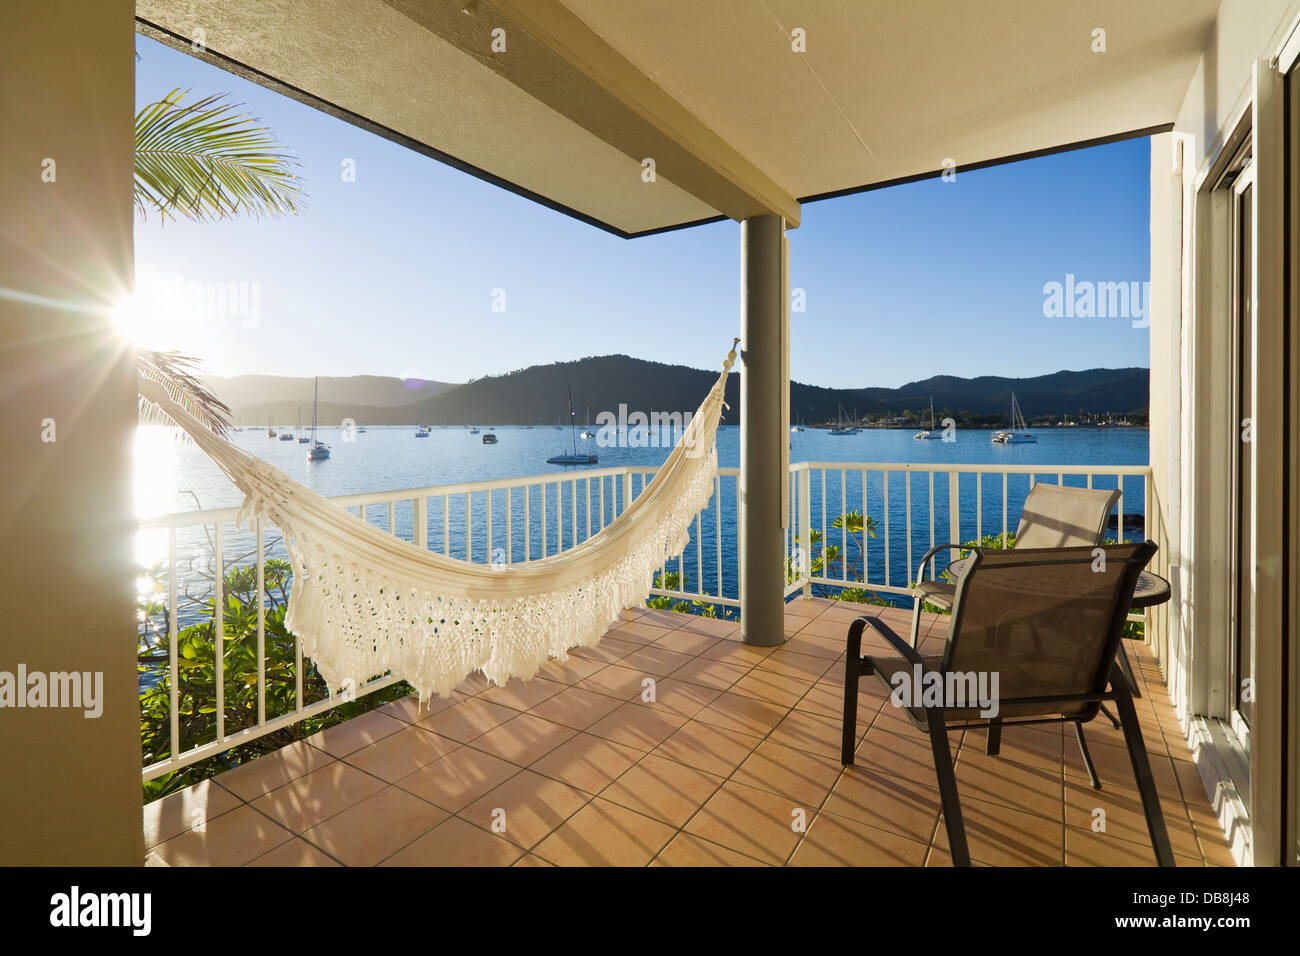 Vista mare da Coral Sea Resort. Airlie Beach Whitsundays, Queensland, Australia Immagini Stock